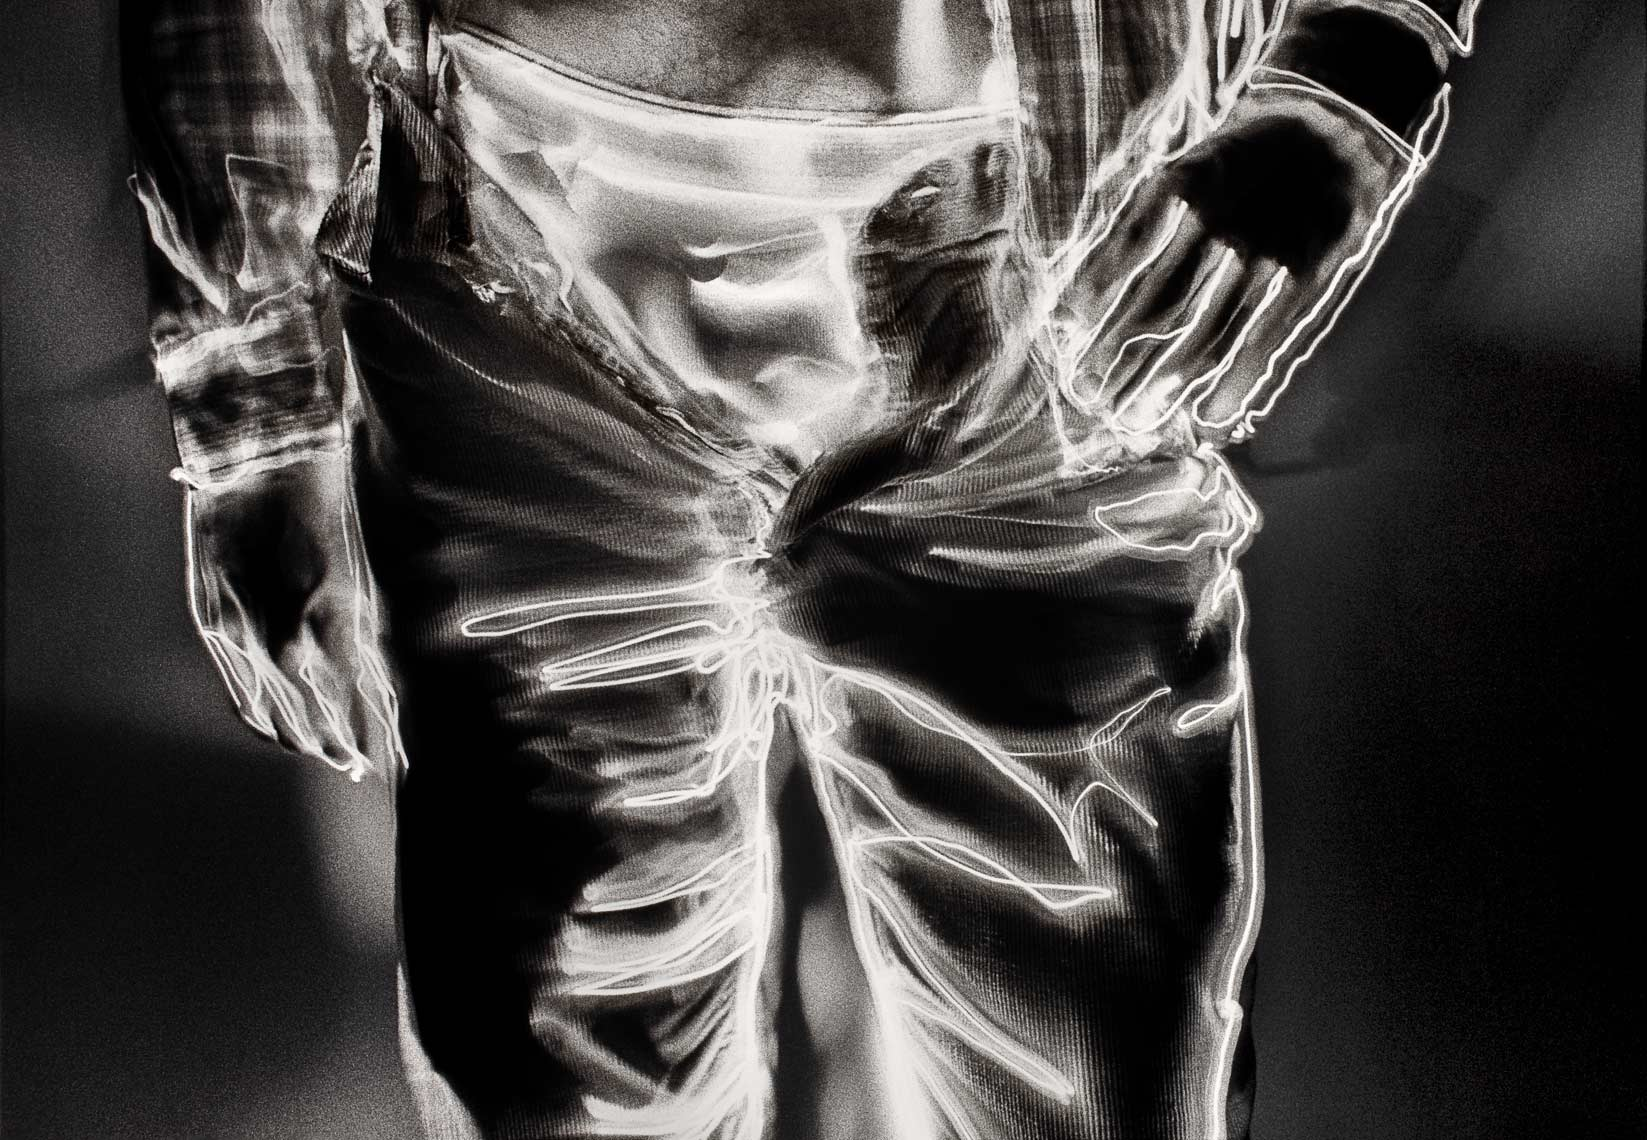 David Lebe; Unzipped,1981, light drawing, black and white photograph